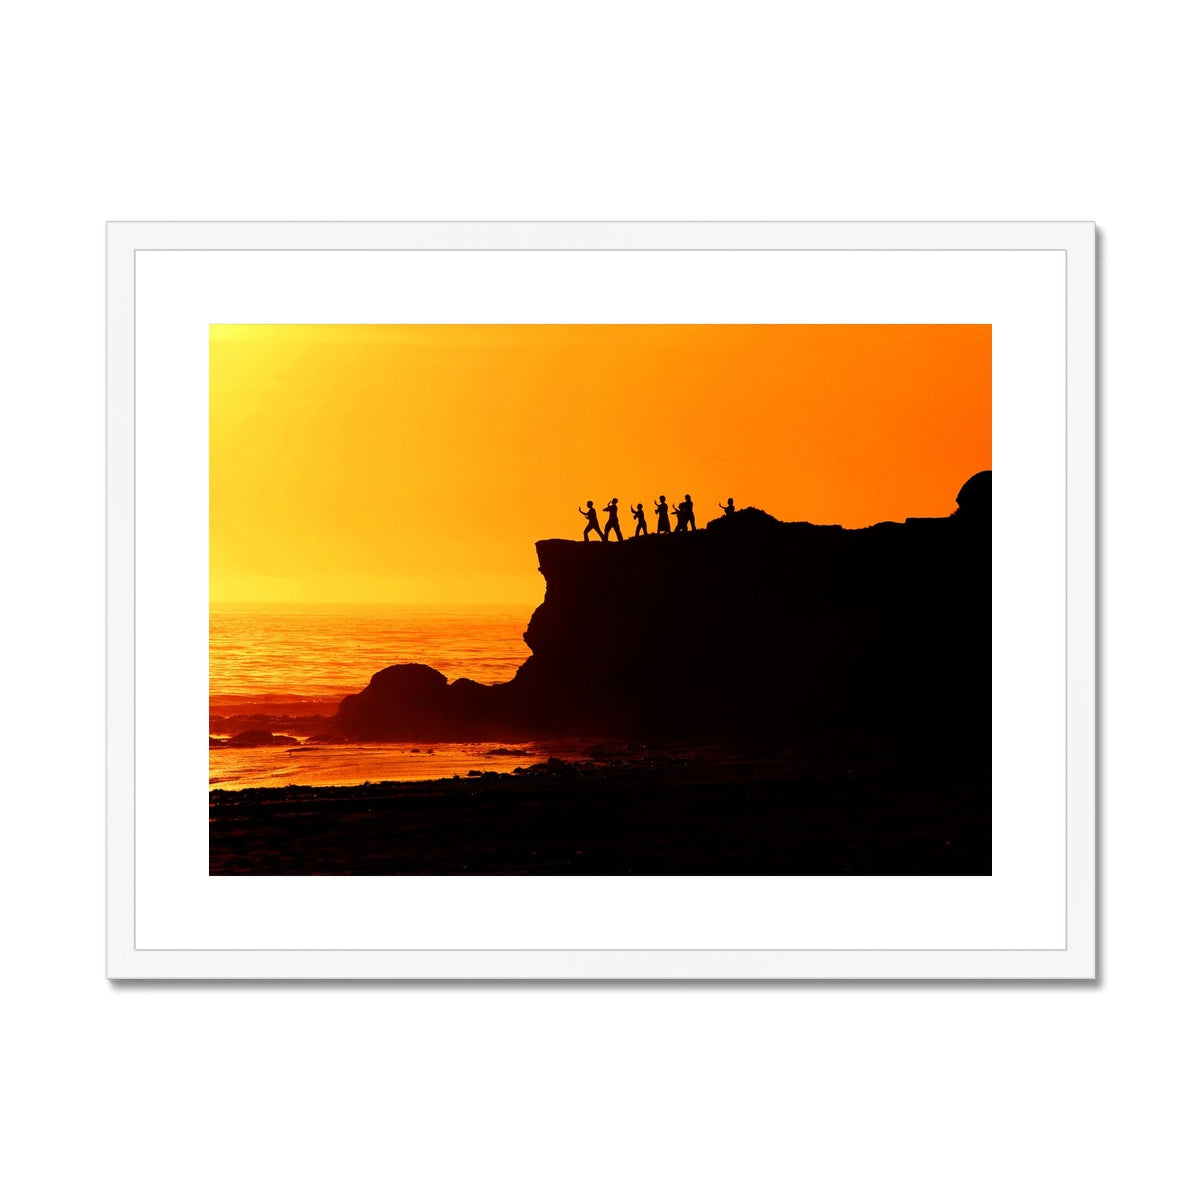 Tai Chi Sunset - California Framed & Mounted Print